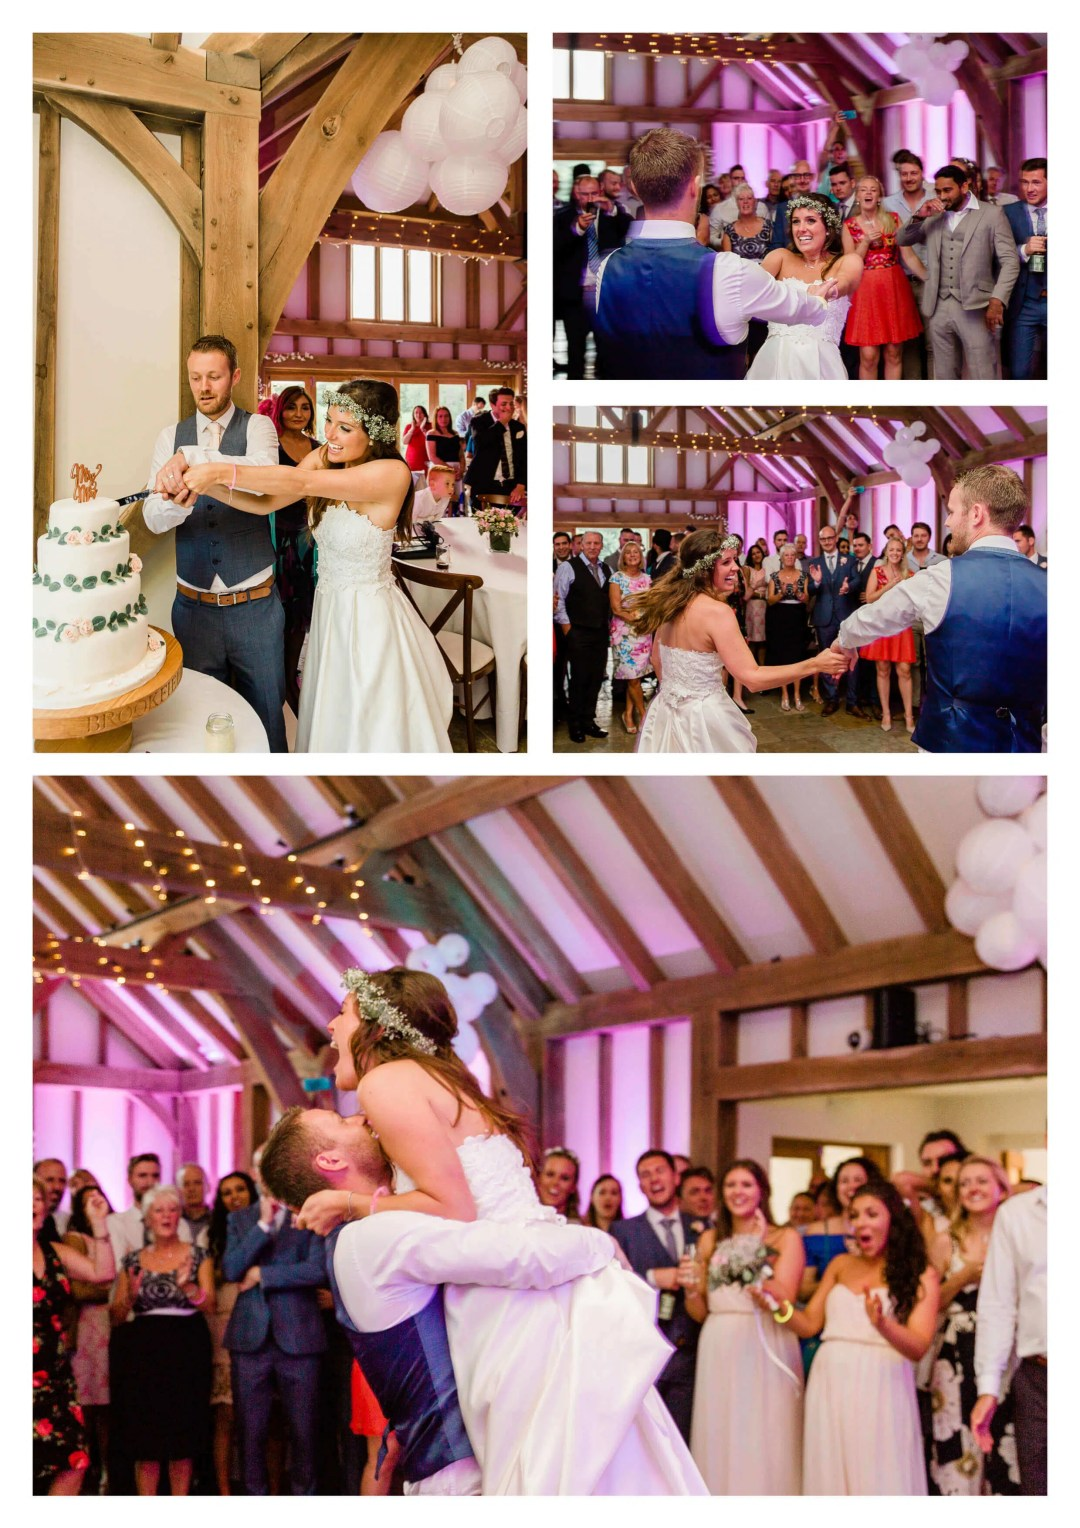 Couple's first dance at Brookfield Barn wedding photography